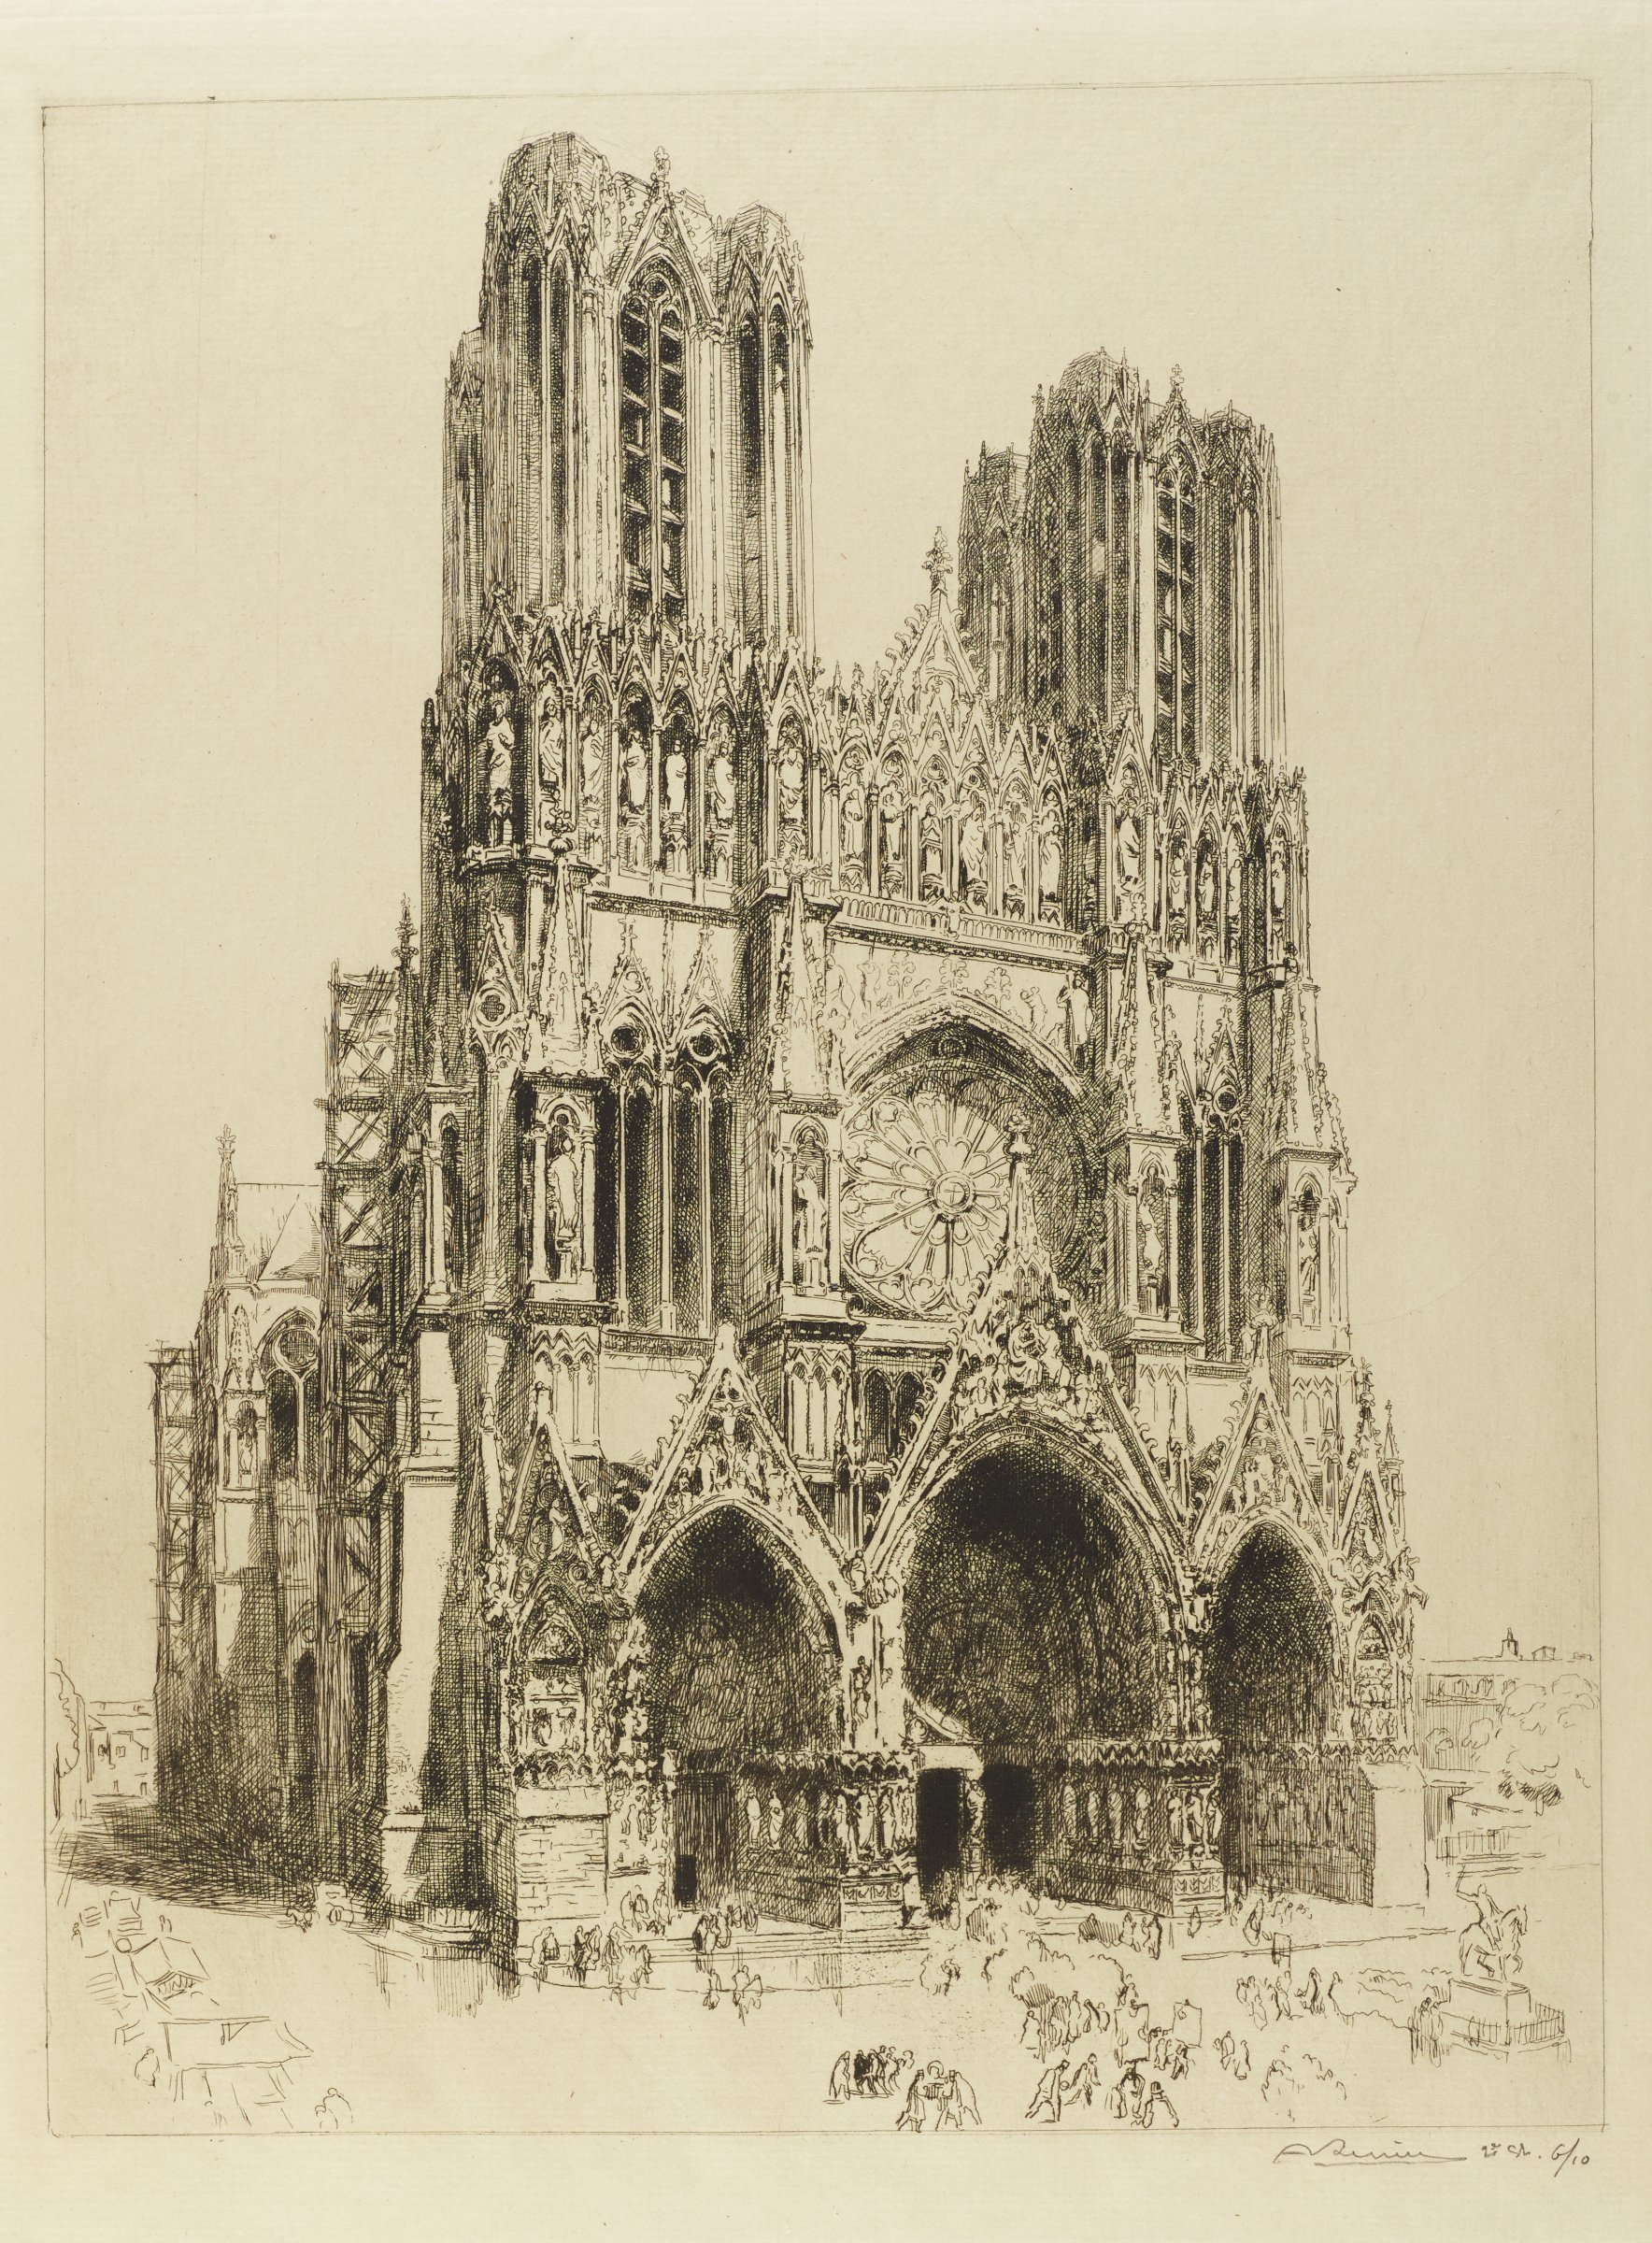 The facade of Reims Cathedral is shown. Outlines of figures populate the street below.